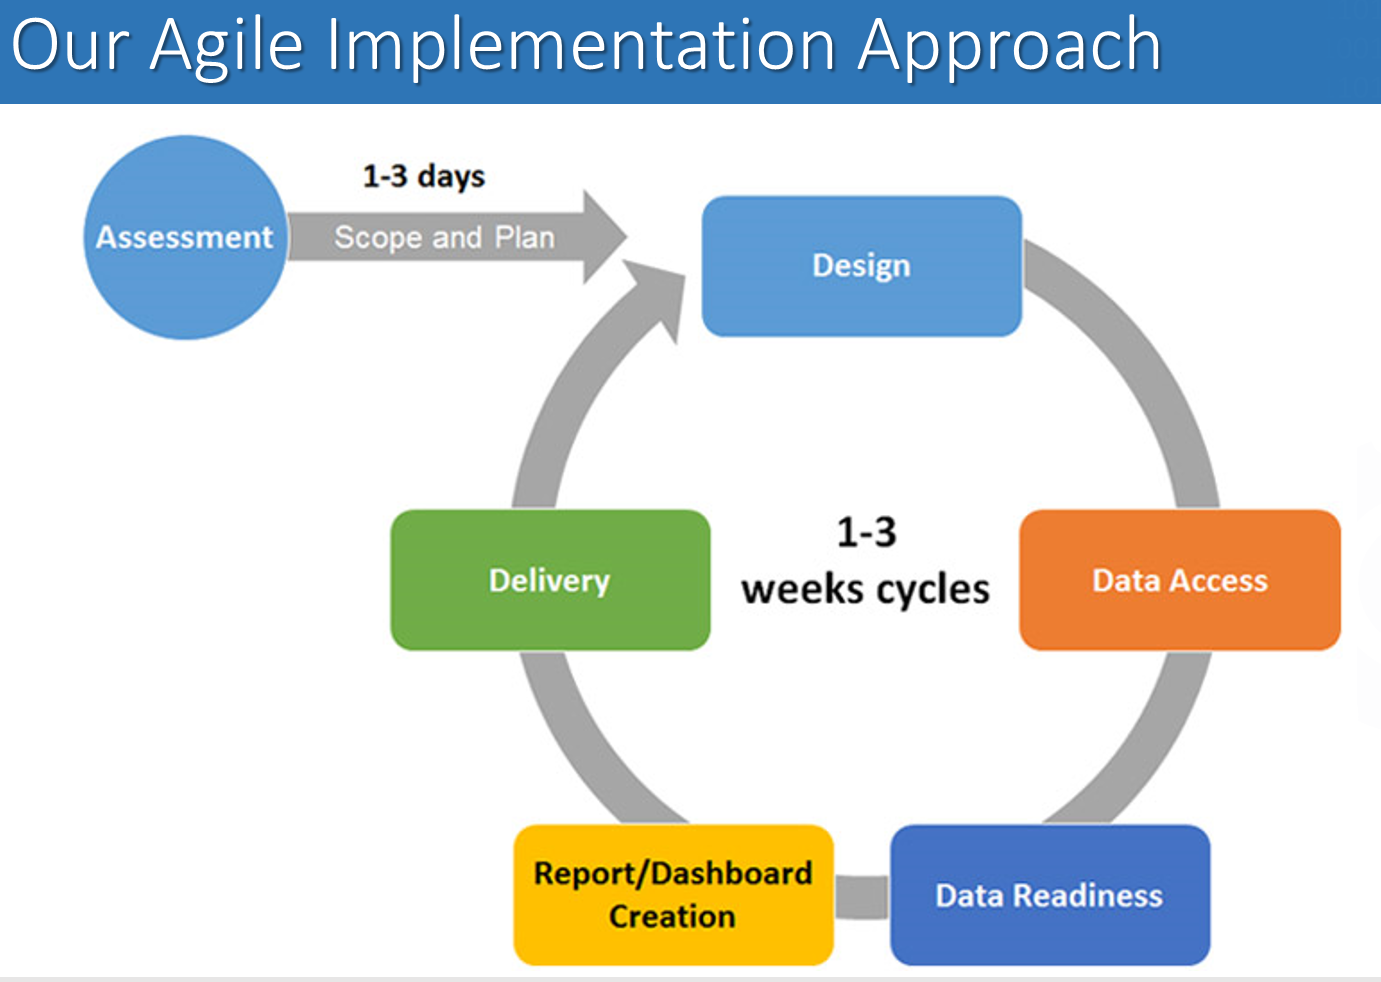 Agile approach to implementation